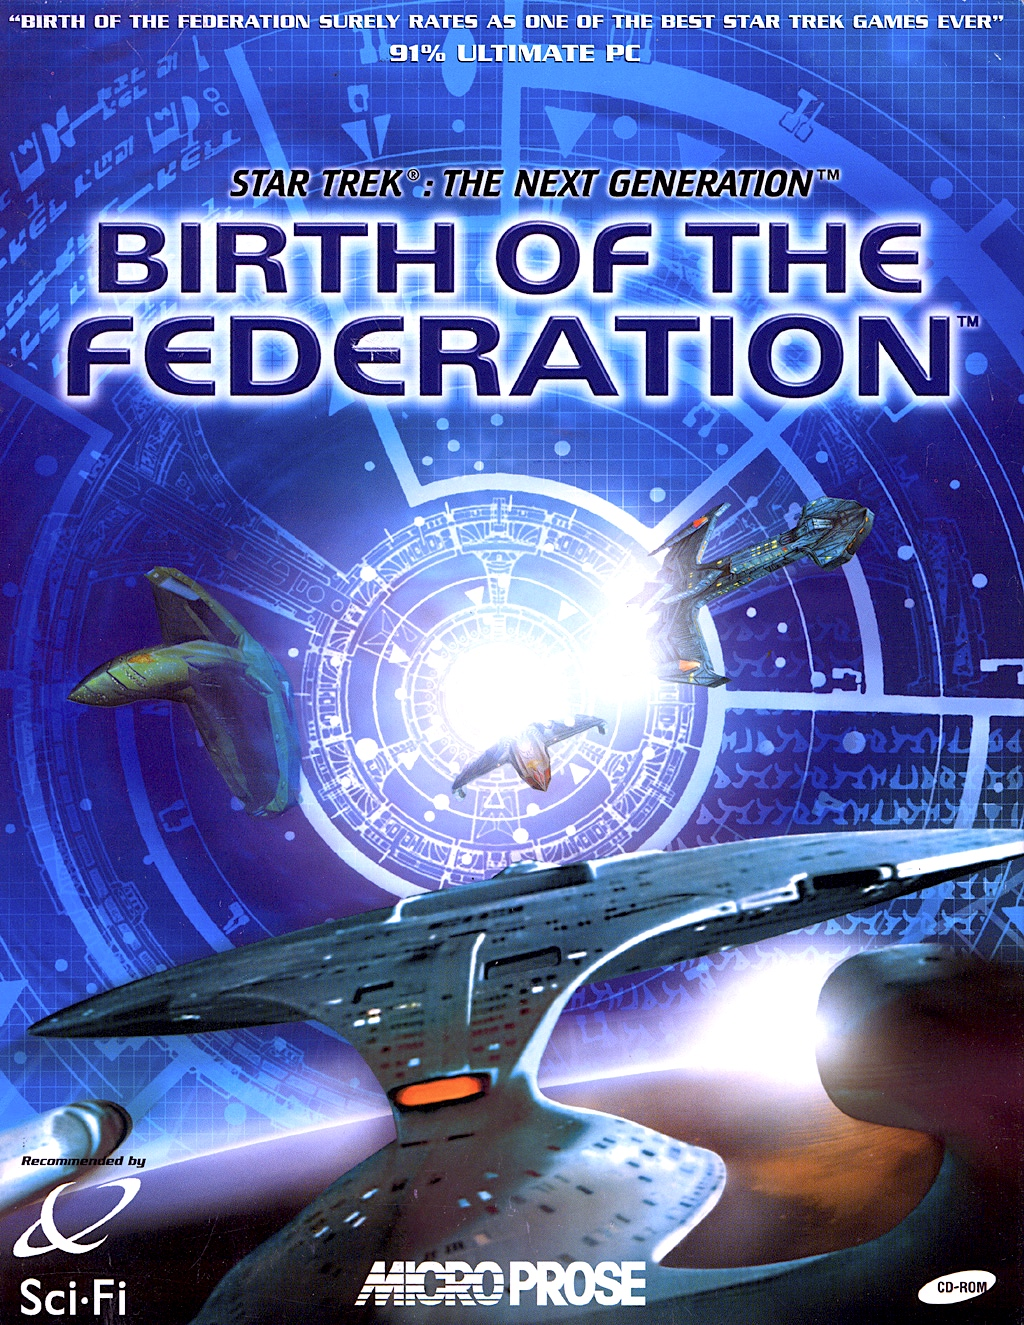 File:Birth of the Federation.jpg